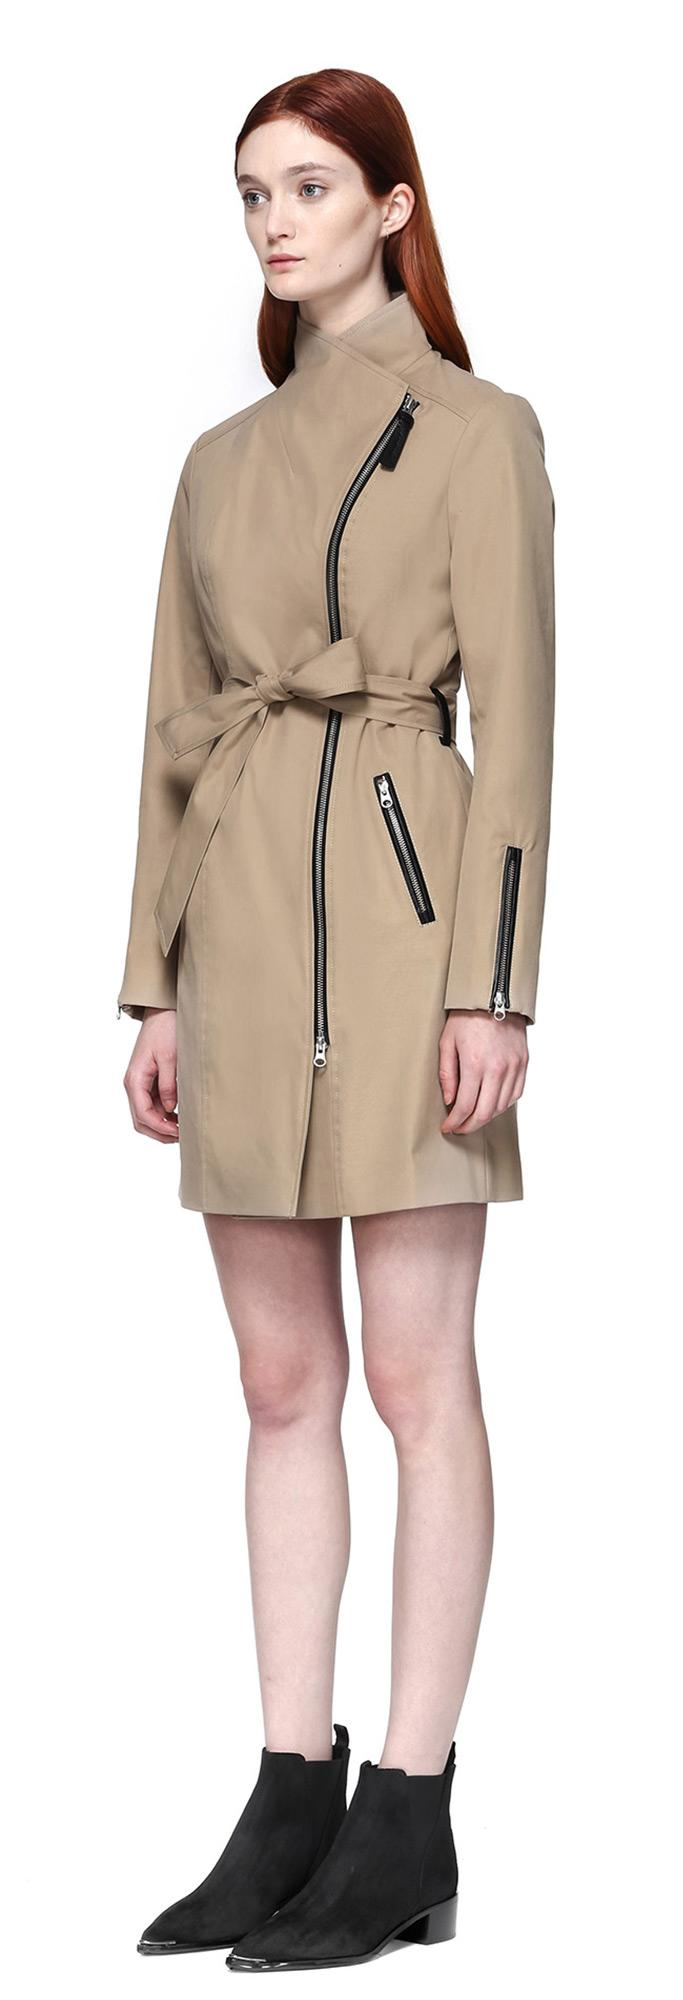 Fall And Winter Coats For Women Outerwear London Fog - Belted Trench Coat Women - Tradingbasis